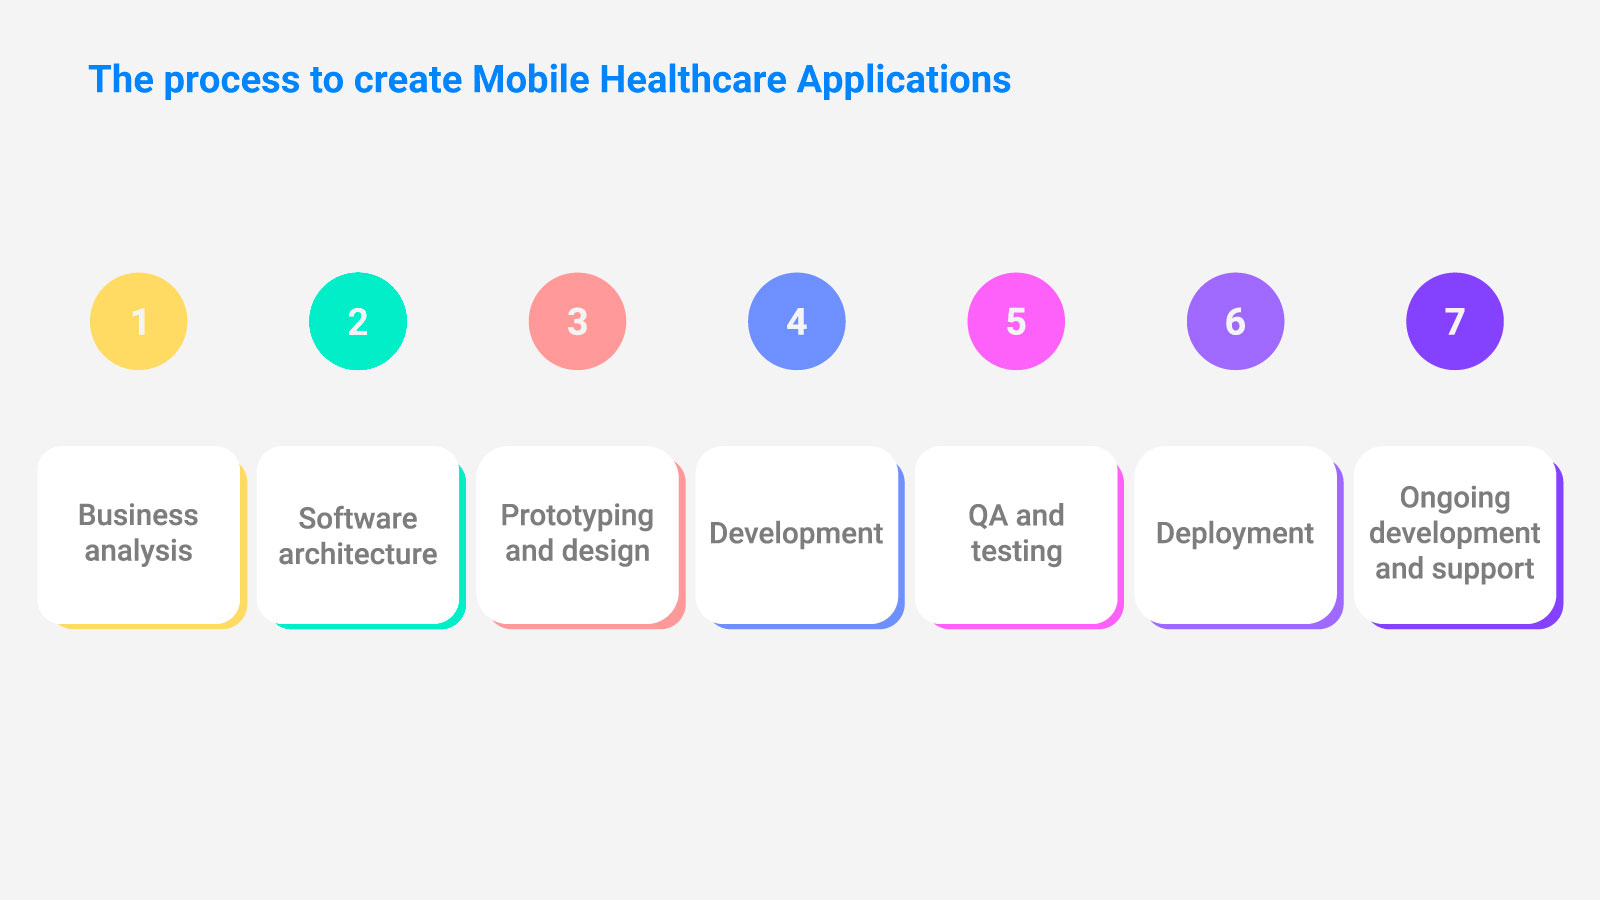 The process to create Mobile Healthcare Applications